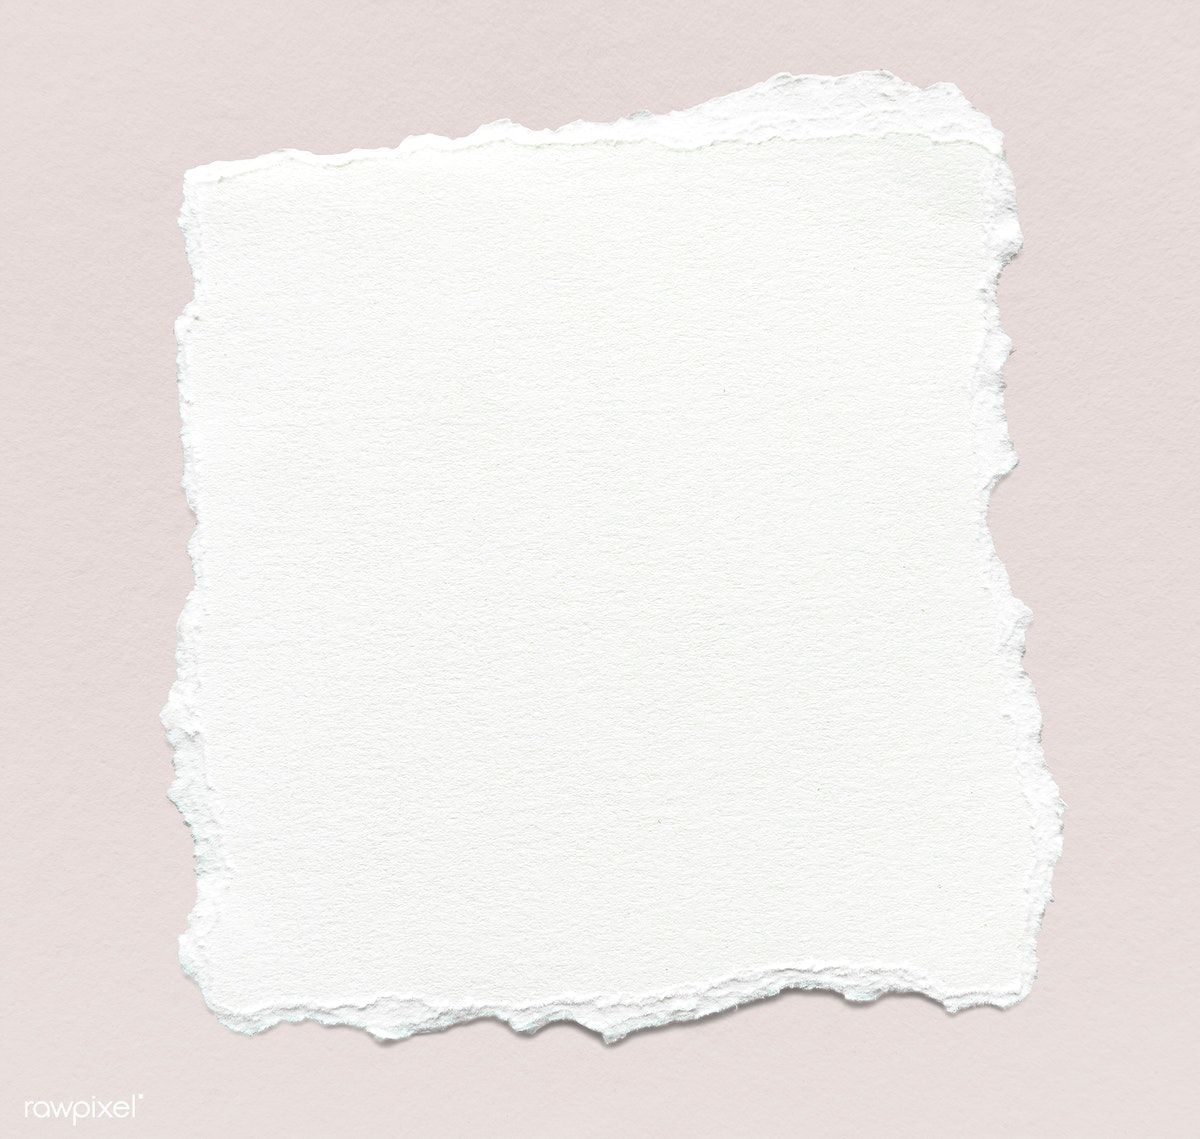 Download Premium Psd Of Blank Torn White Paper Template 1201902 Paper Texture White Torn Paper Paper Background Texture